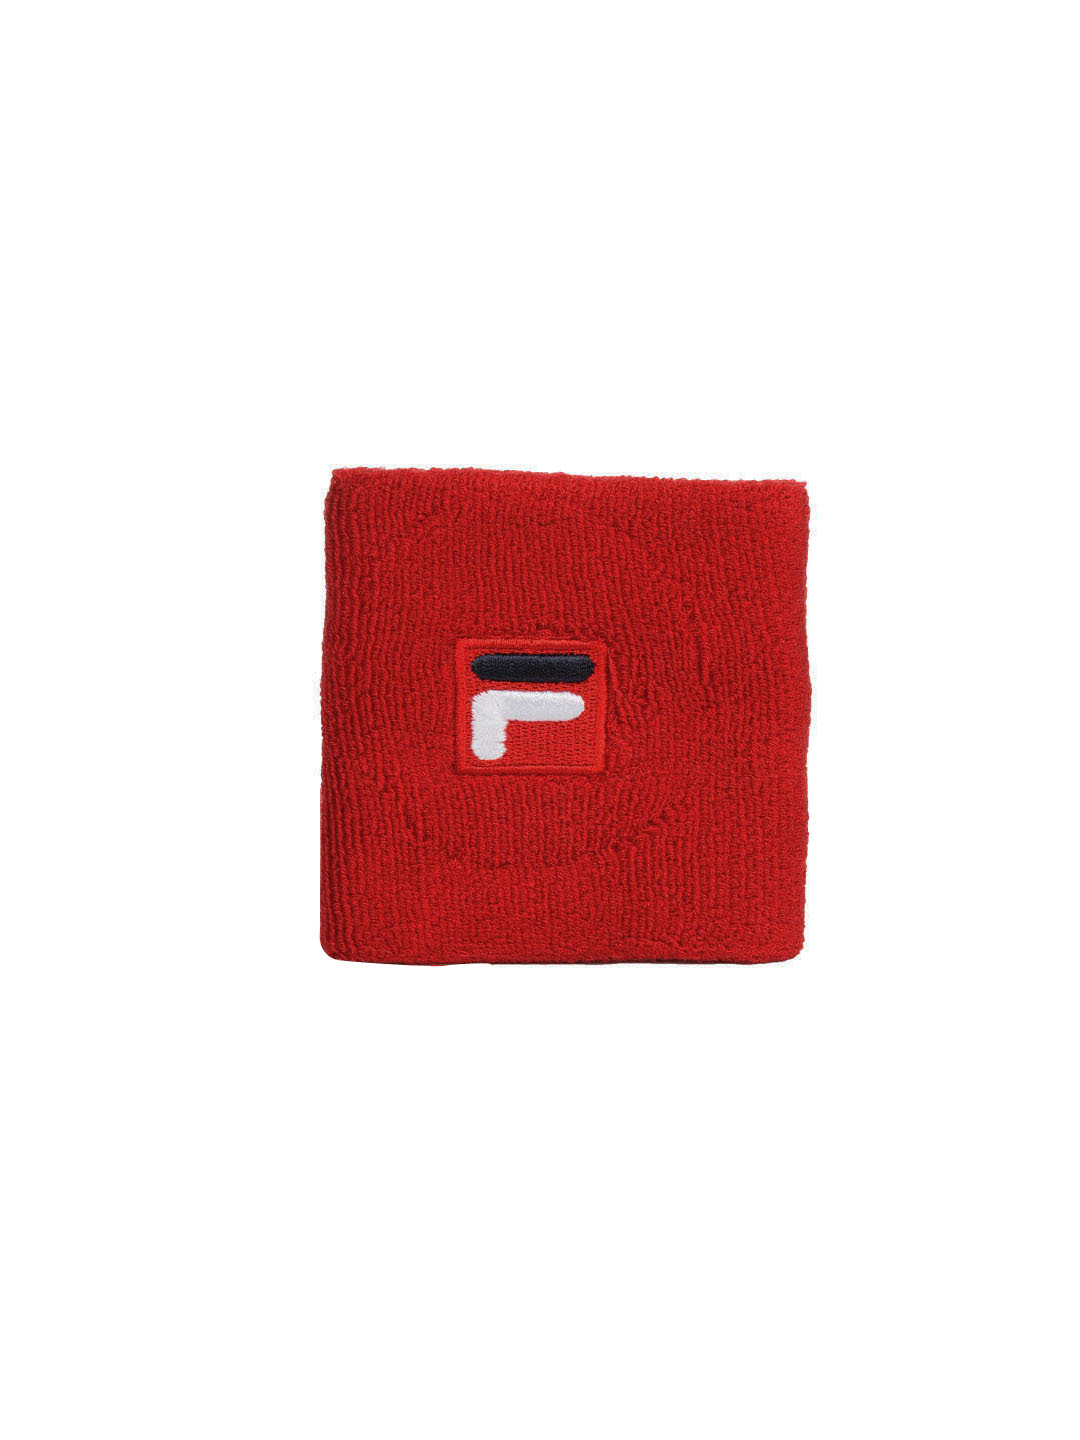 Fila Unisex Red Wristband